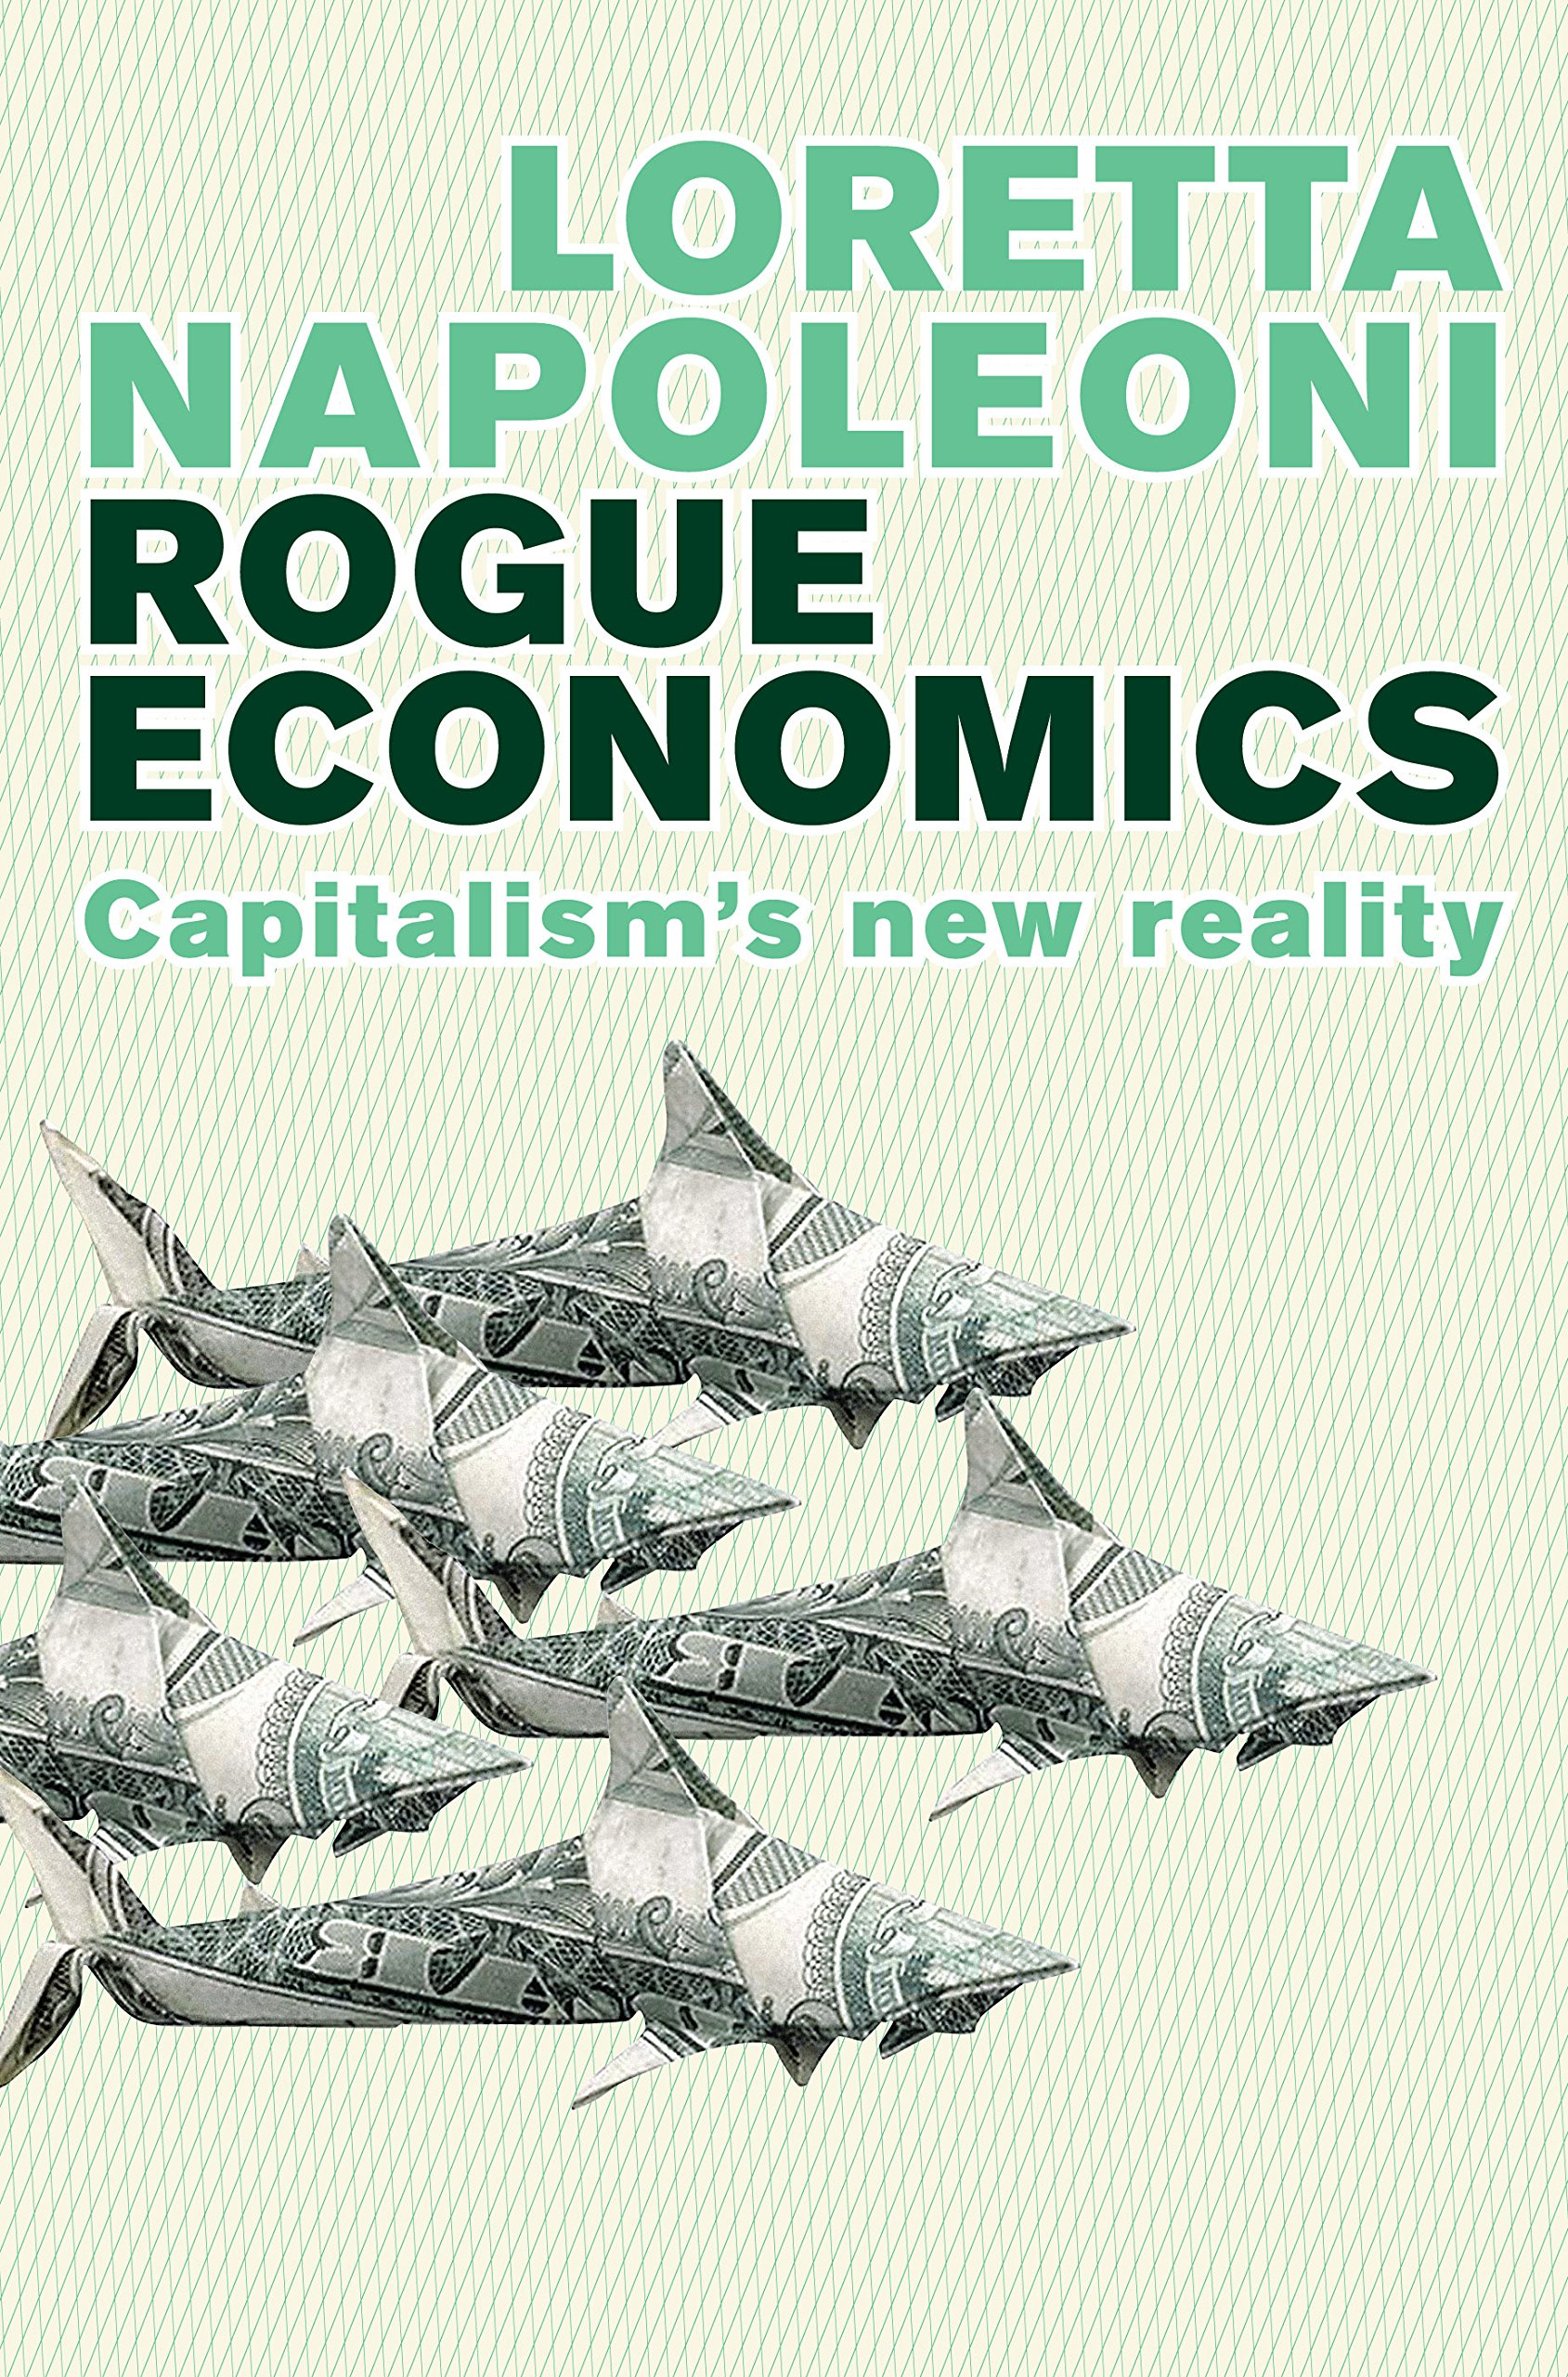 Rogue Economics: Capitalism's New Reality - Napoleoni Loretta - reviews for audiobook - quotes, rating, reviews, where to buy